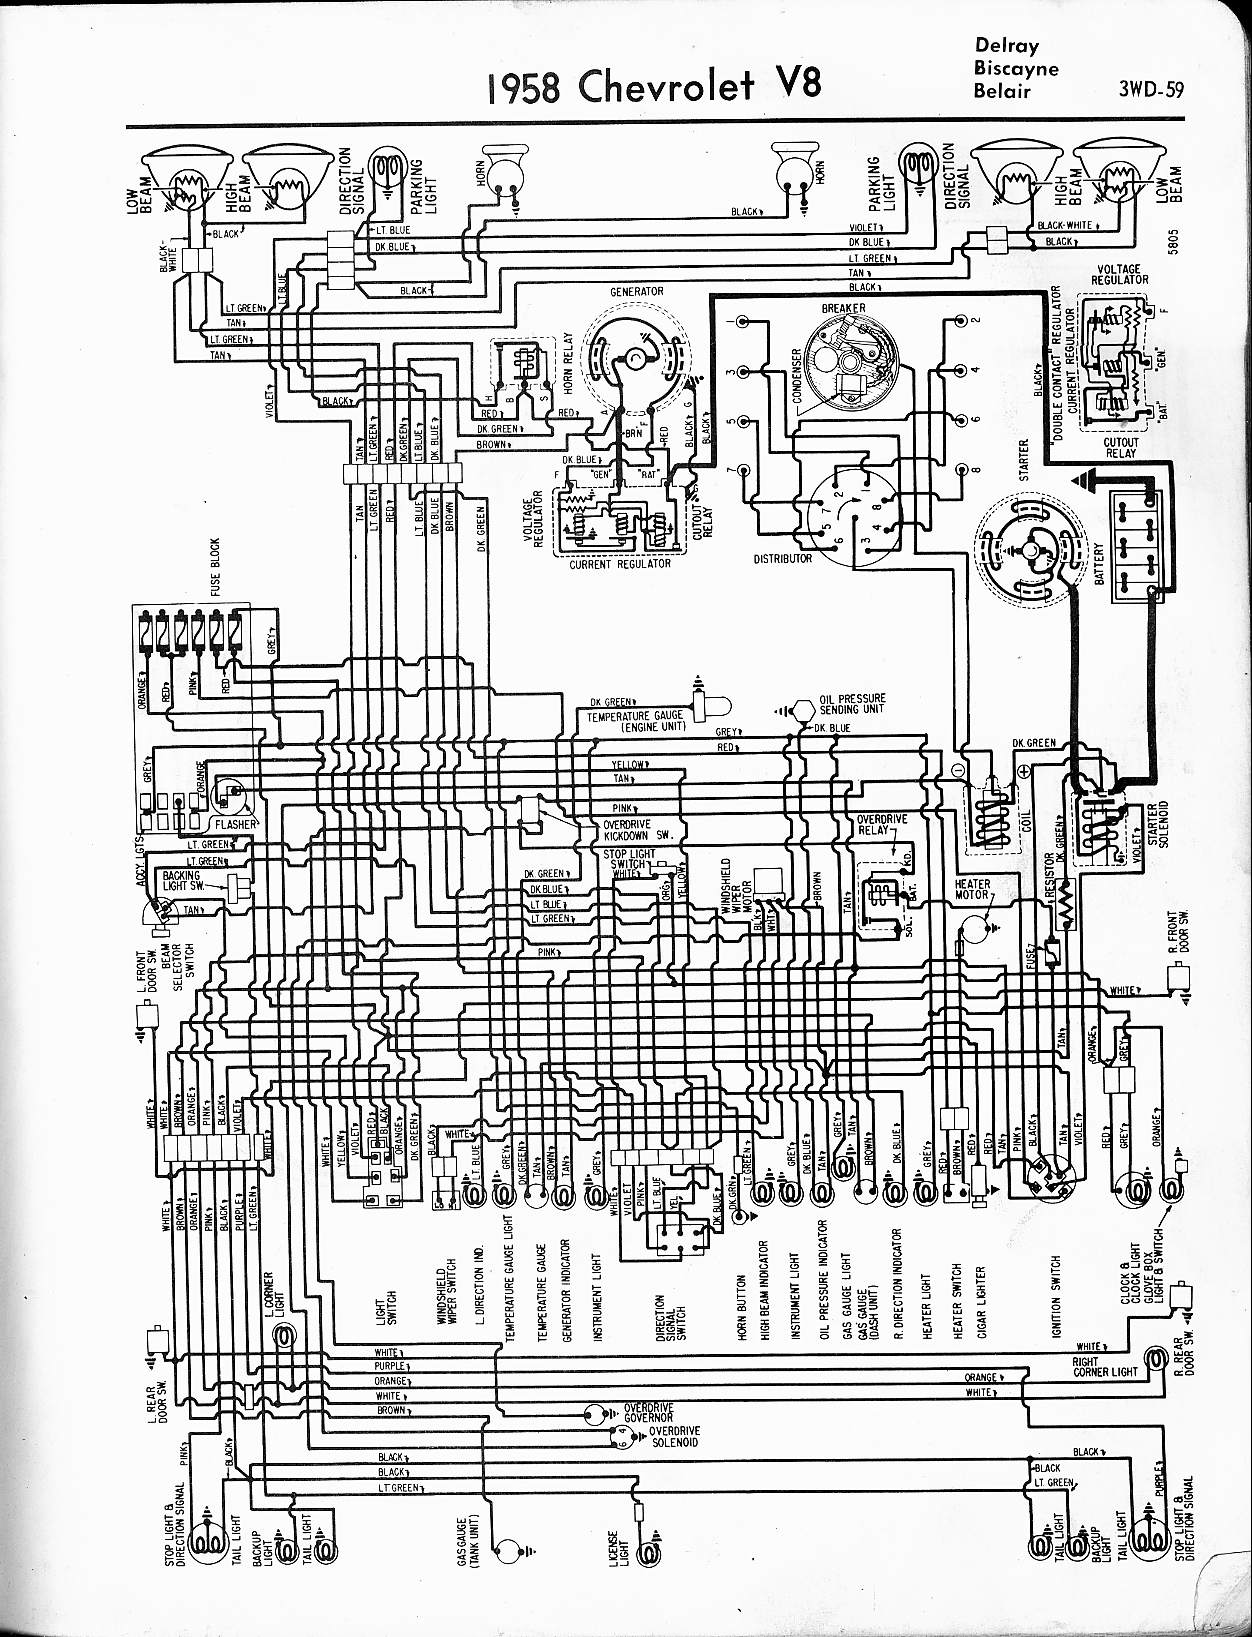 MWireChev58_3WD 059 57 65 chevy wiring diagrams GM Factory Wiring Diagram at honlapkeszites.co